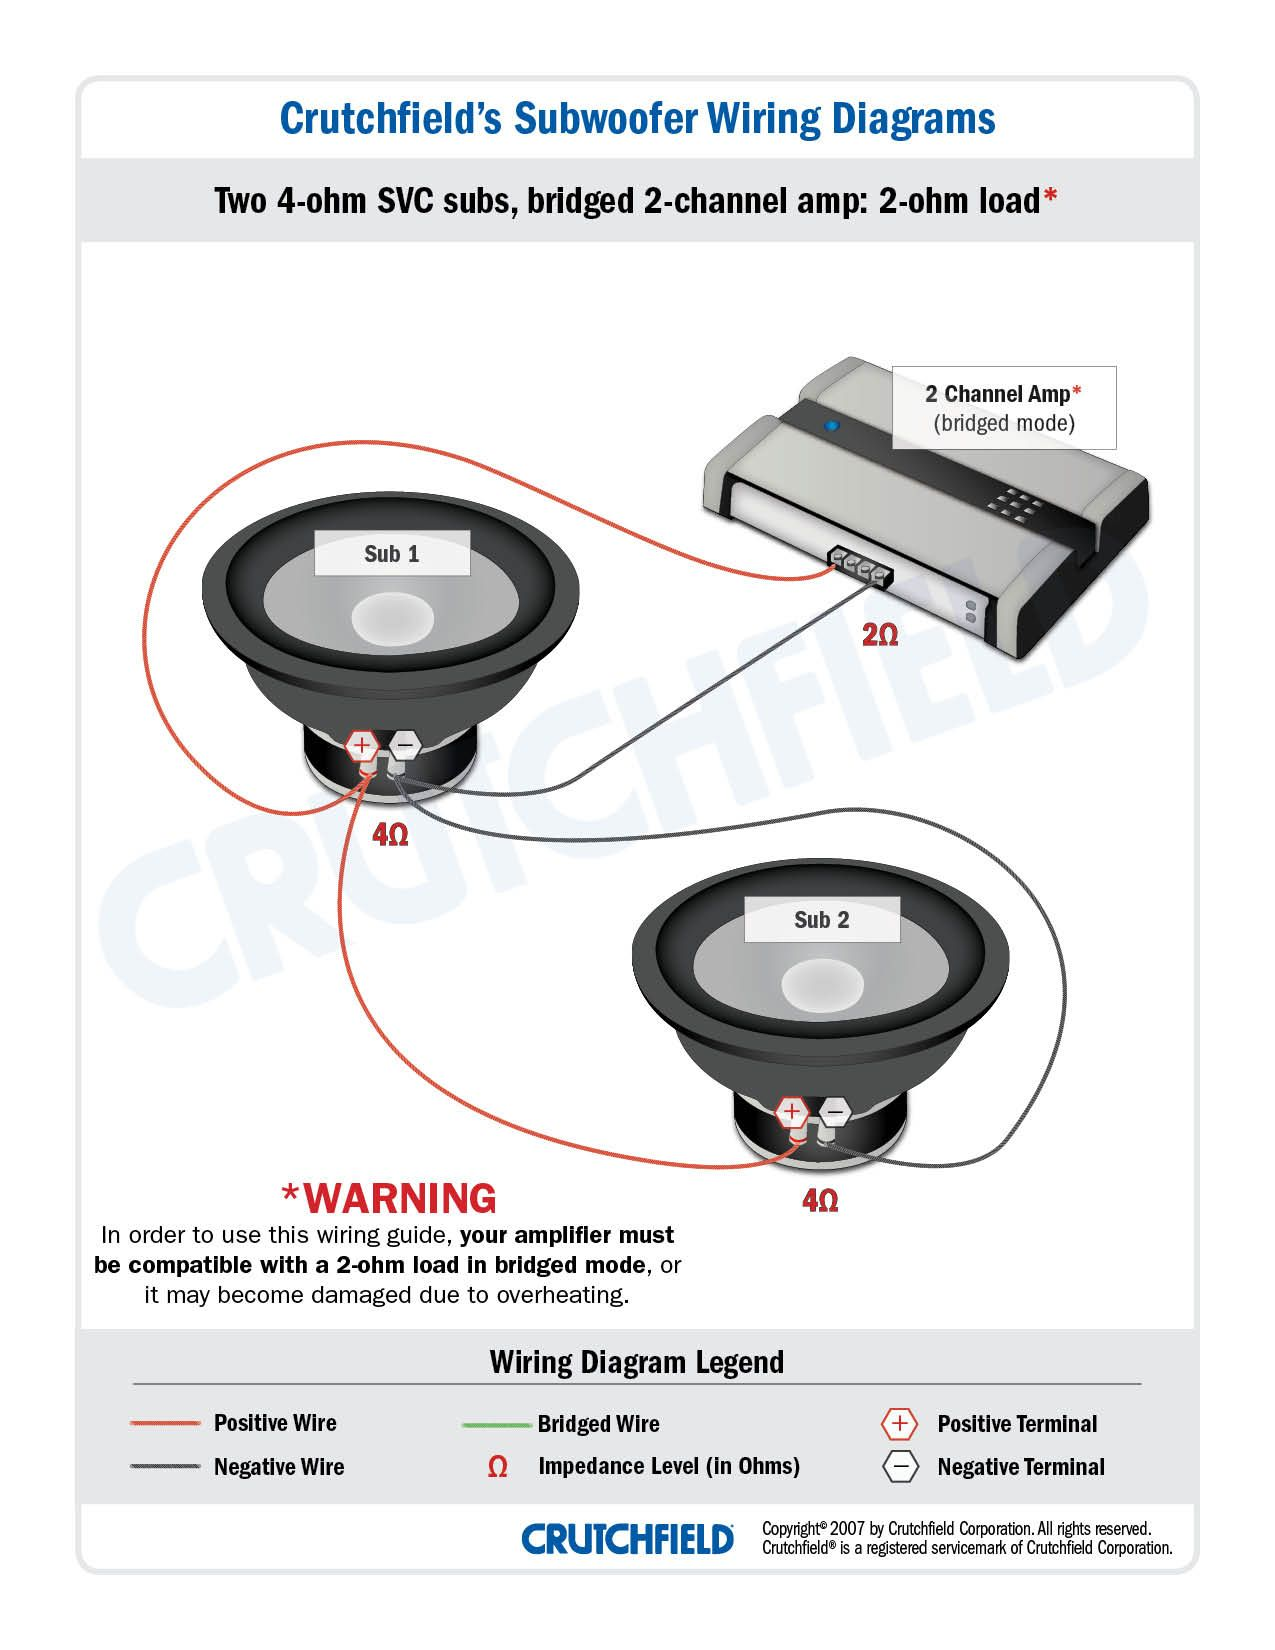 subwoofer wiring diagram dual 4 ohm gooddy org best of 1 car audio rh pinterest com wiring diagram for subwoofers in a car wiring diagram for 3 subwoofers